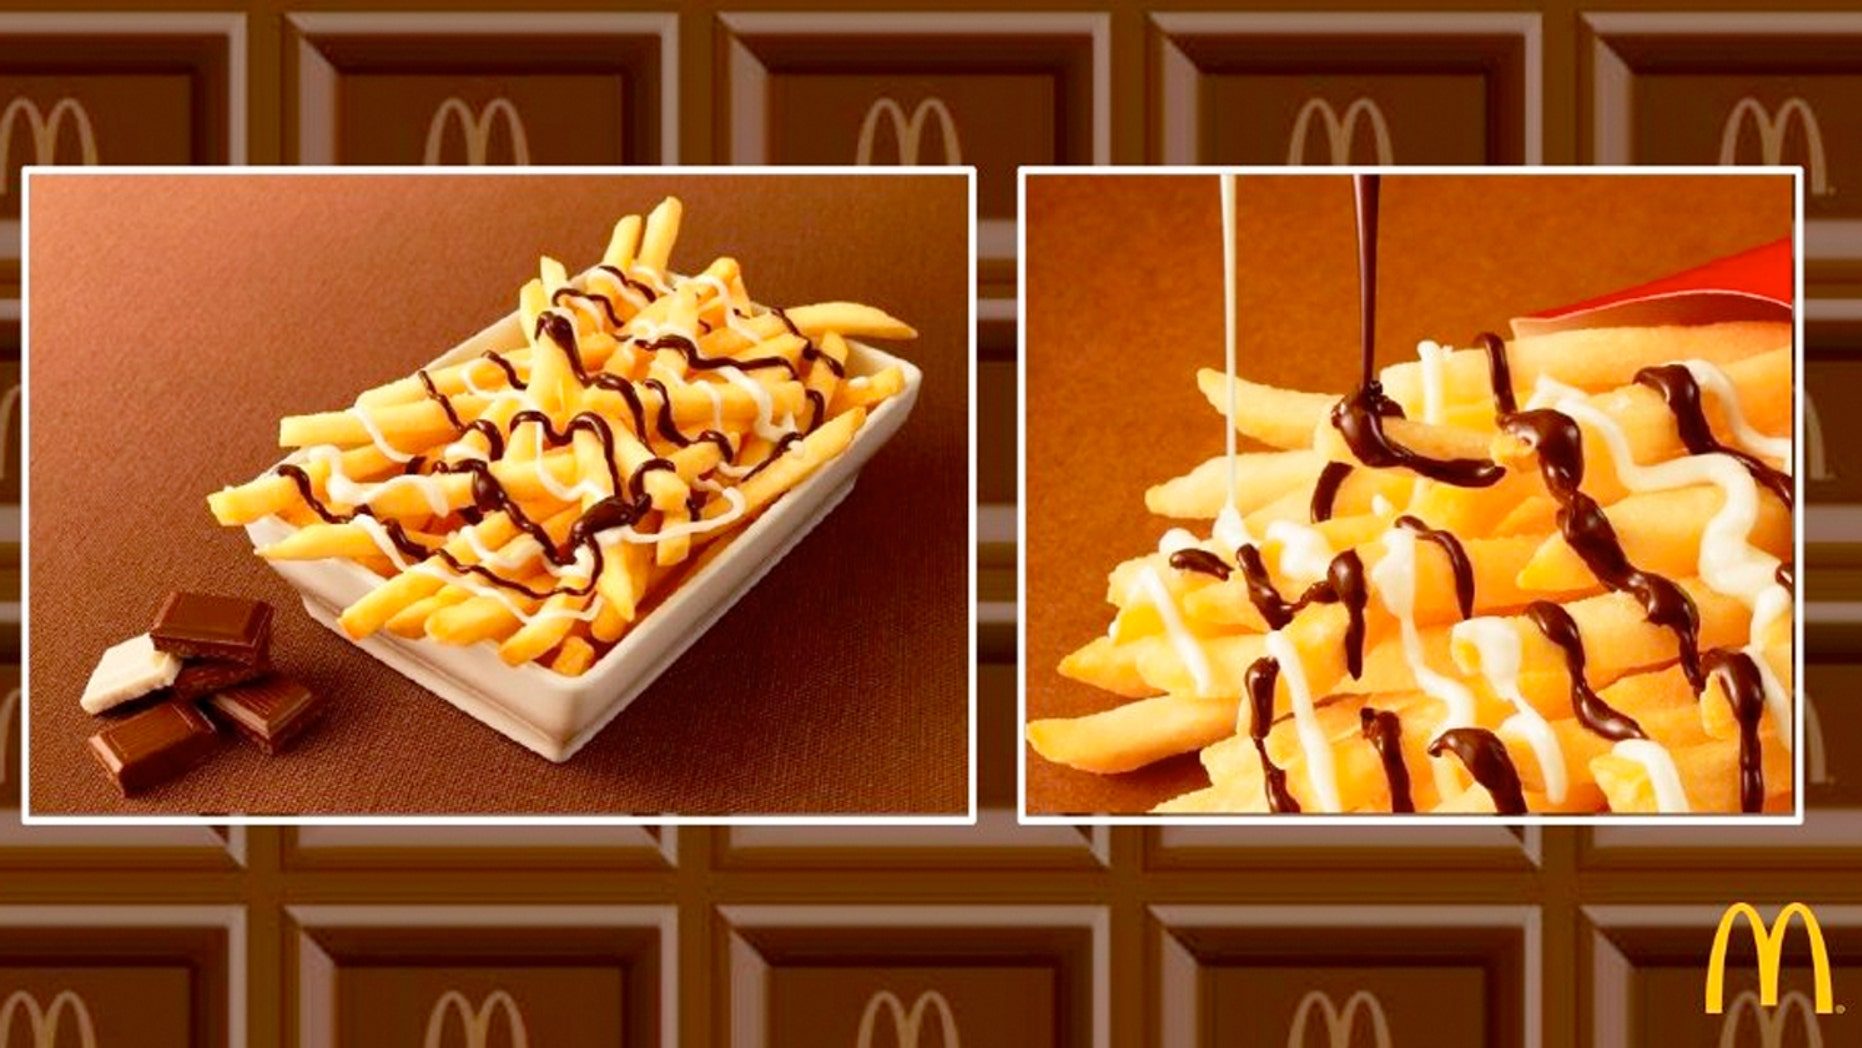 McChoco Potato is a limited-time menu item at locations in Japan staring January 26.